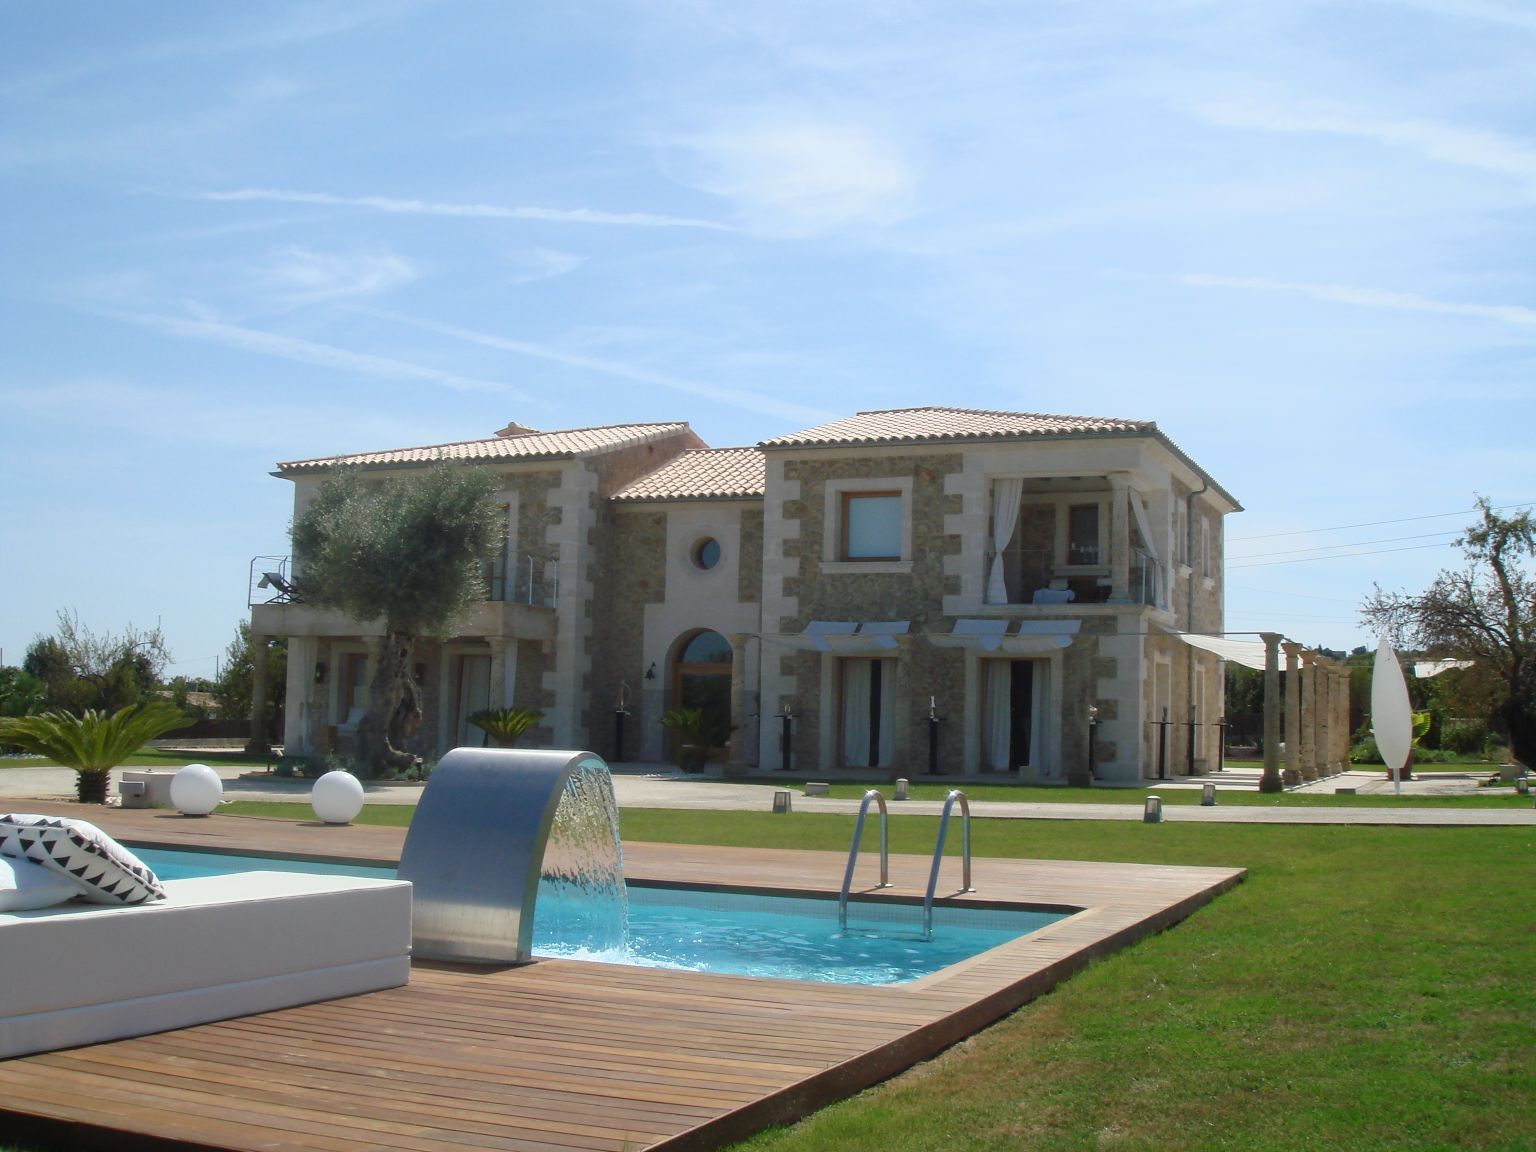 Luxury villa for holidays or events in Selva Mallorca